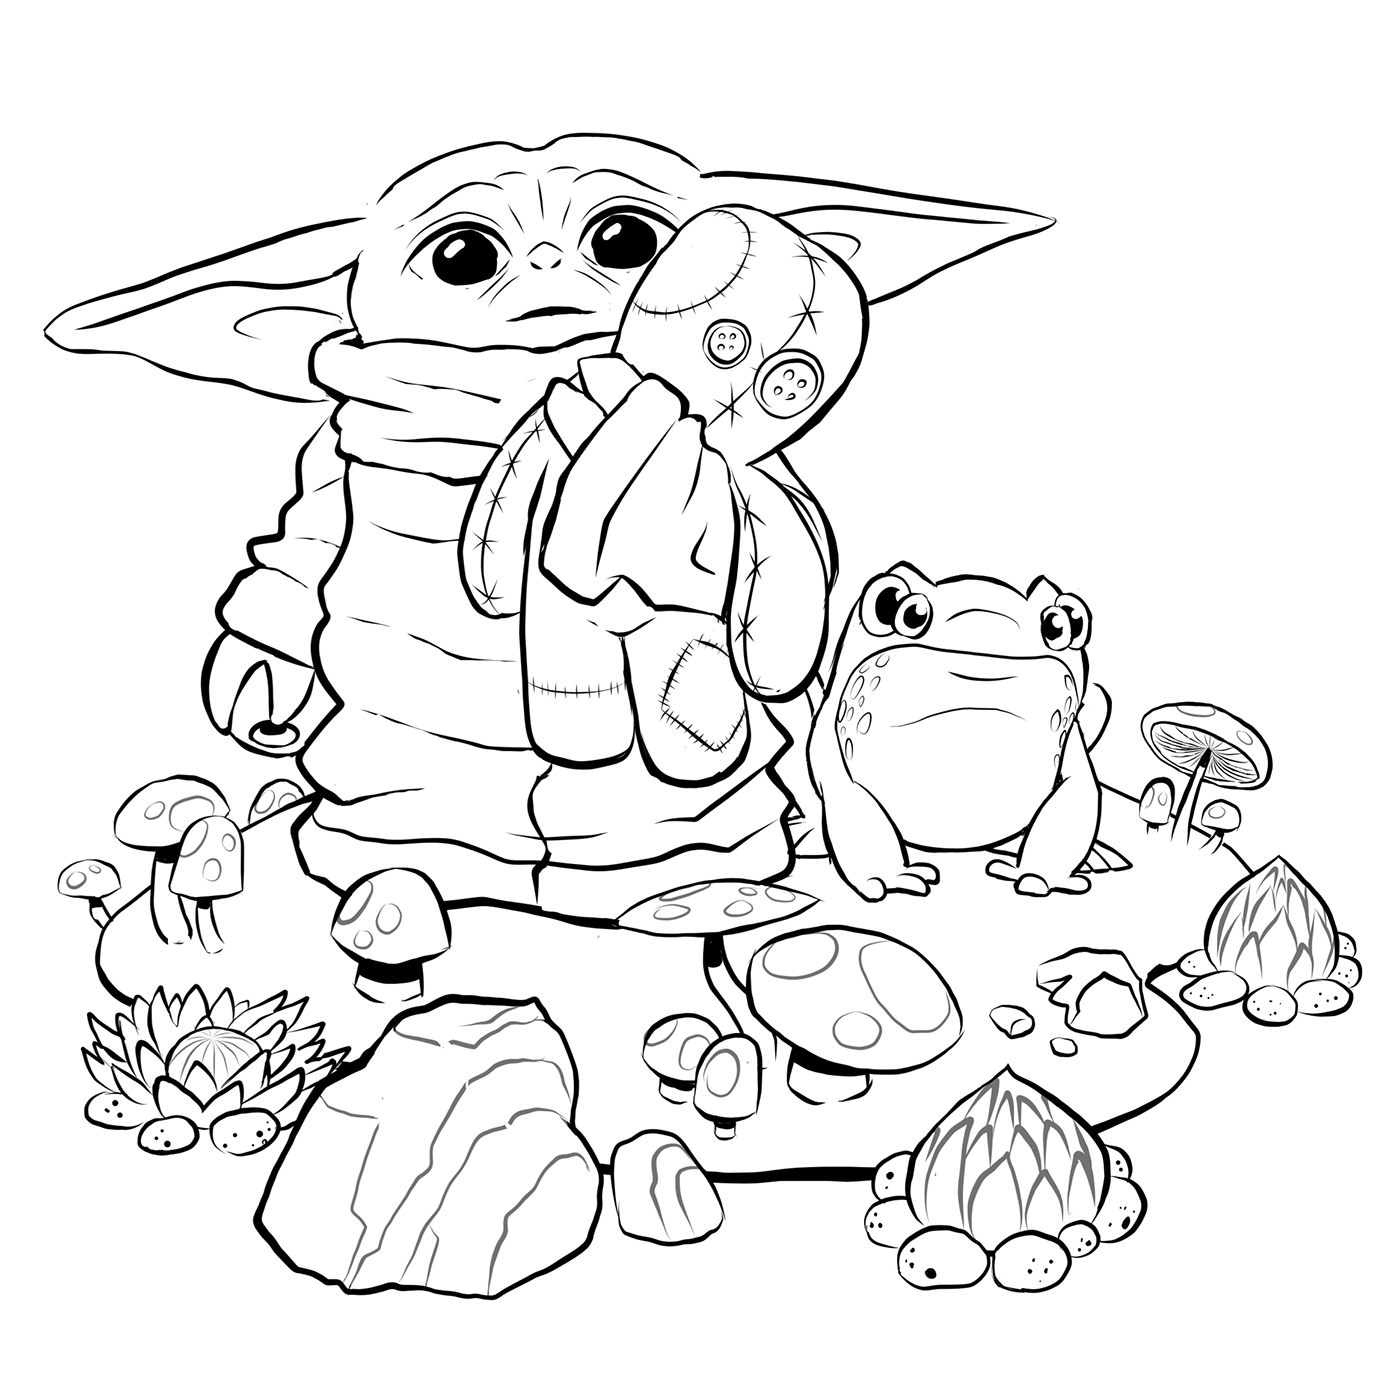 Baby Yoda Coloring Page on Behance